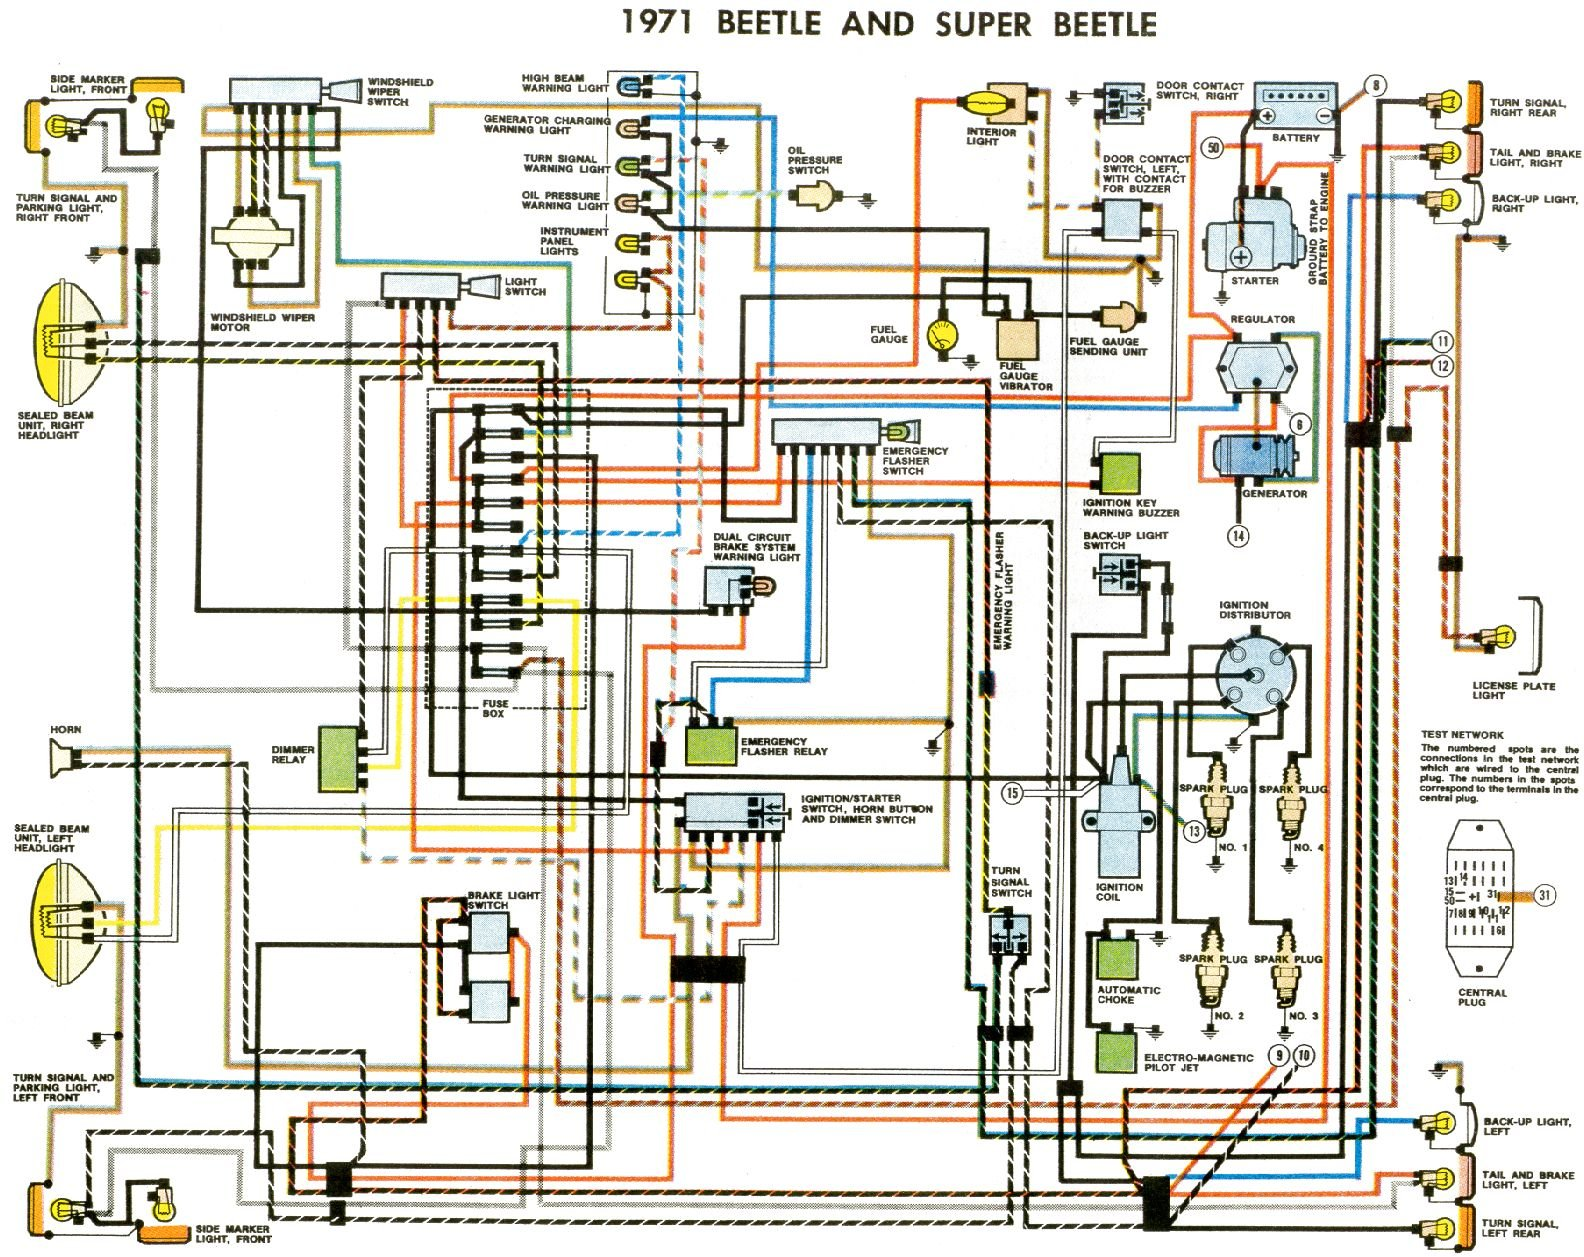 bug_71 1971 beetle wiring diagram (usa) thegoldenbug com beetle wiring diagram to fix a/c fan at readyjetset.co